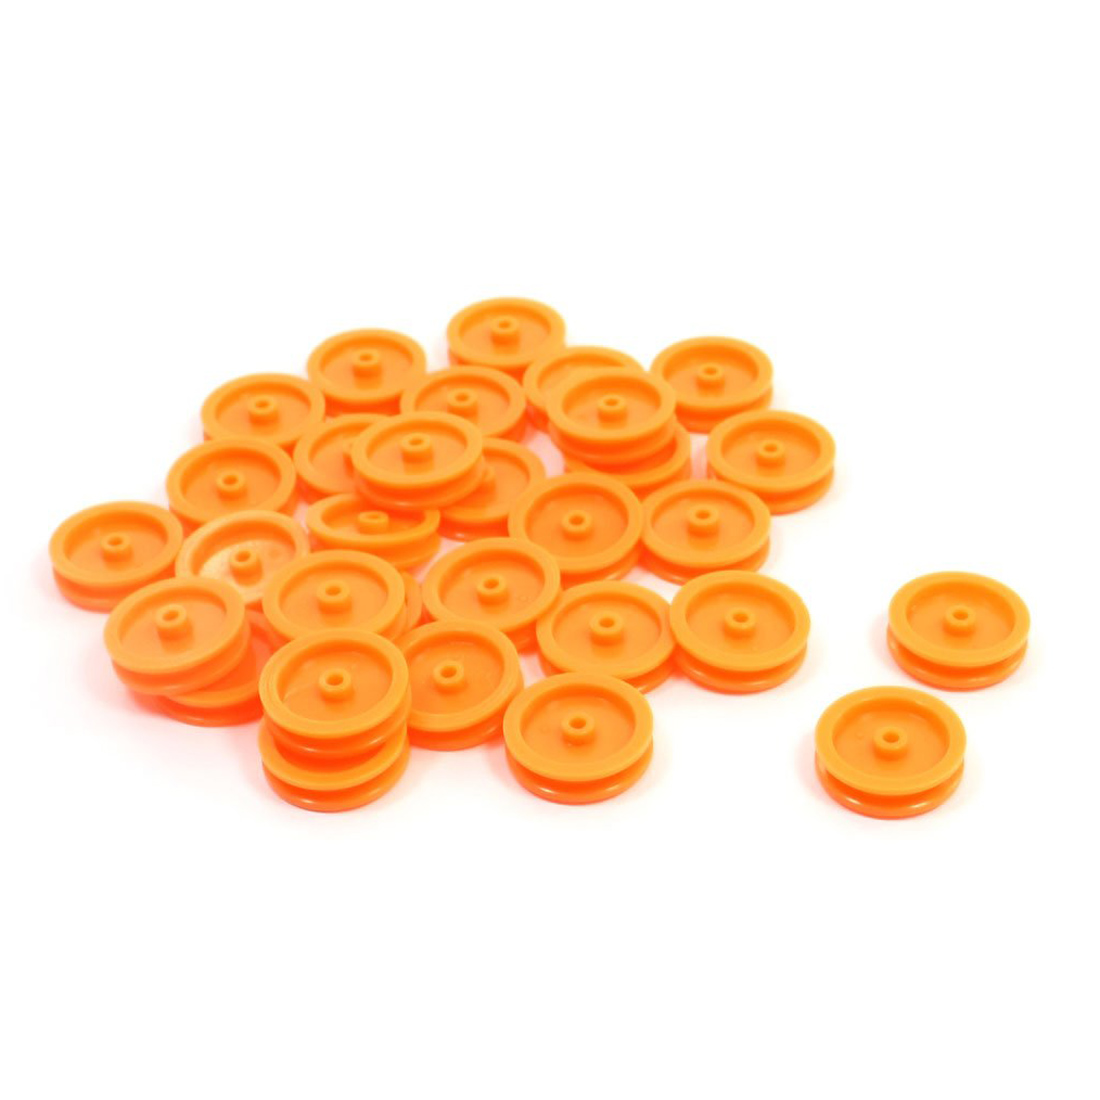 MACH 30 Pcs 2mm Hole Orange Plastic Belt <font><b>Pulley</b></font> for DIY RC Toy <font><b>Car</b></font> Airplane image